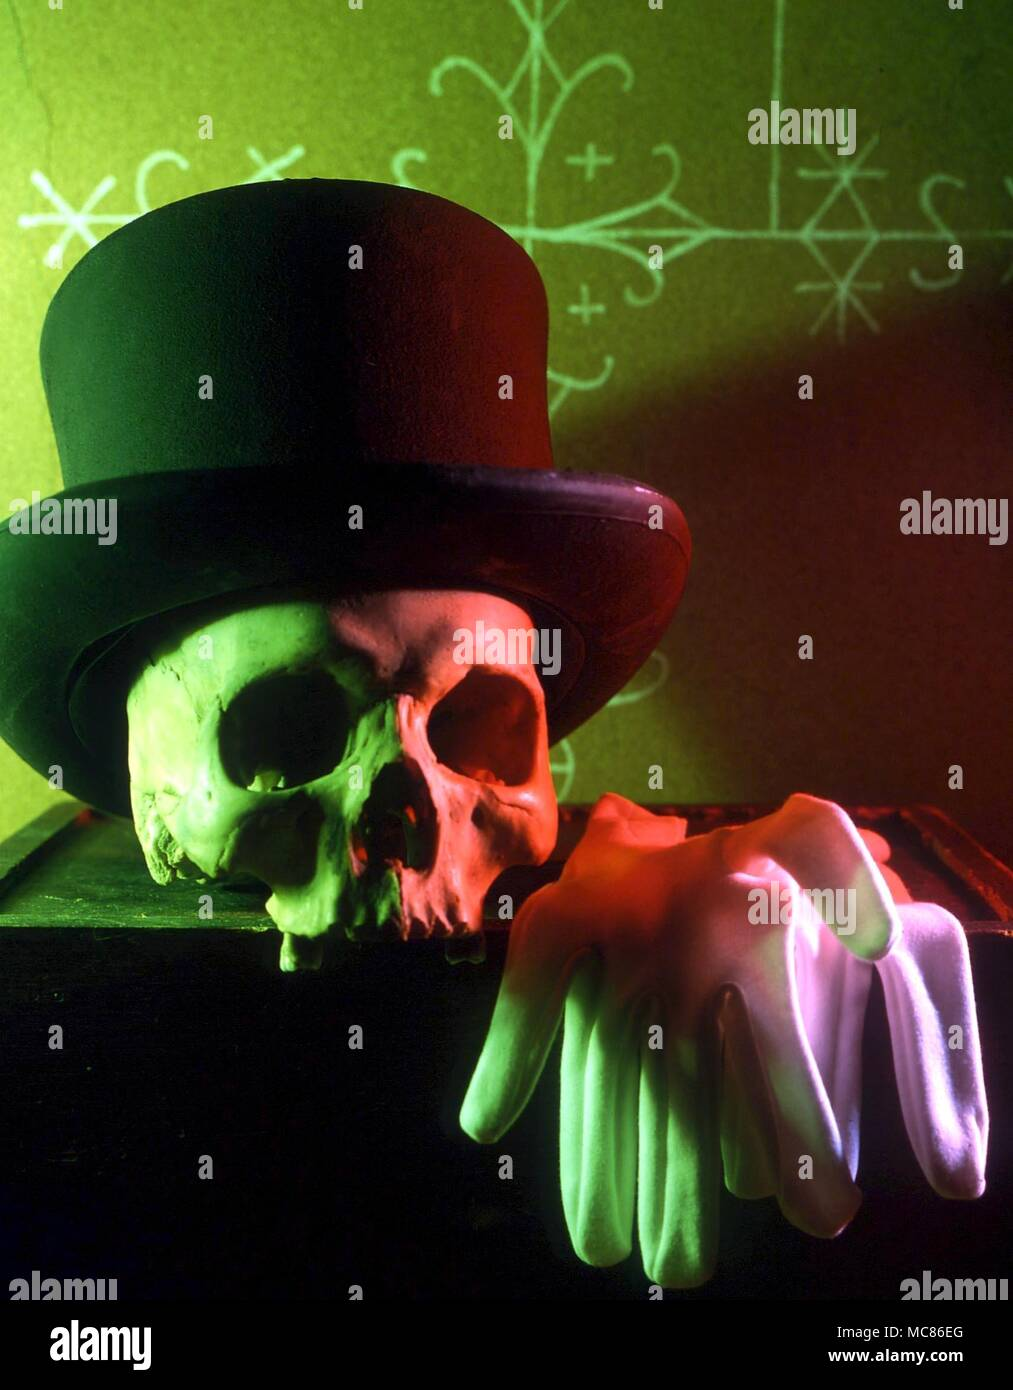 Voodoo The Symbols Of The Voodoo Loa Baron Samedi The Top Hat